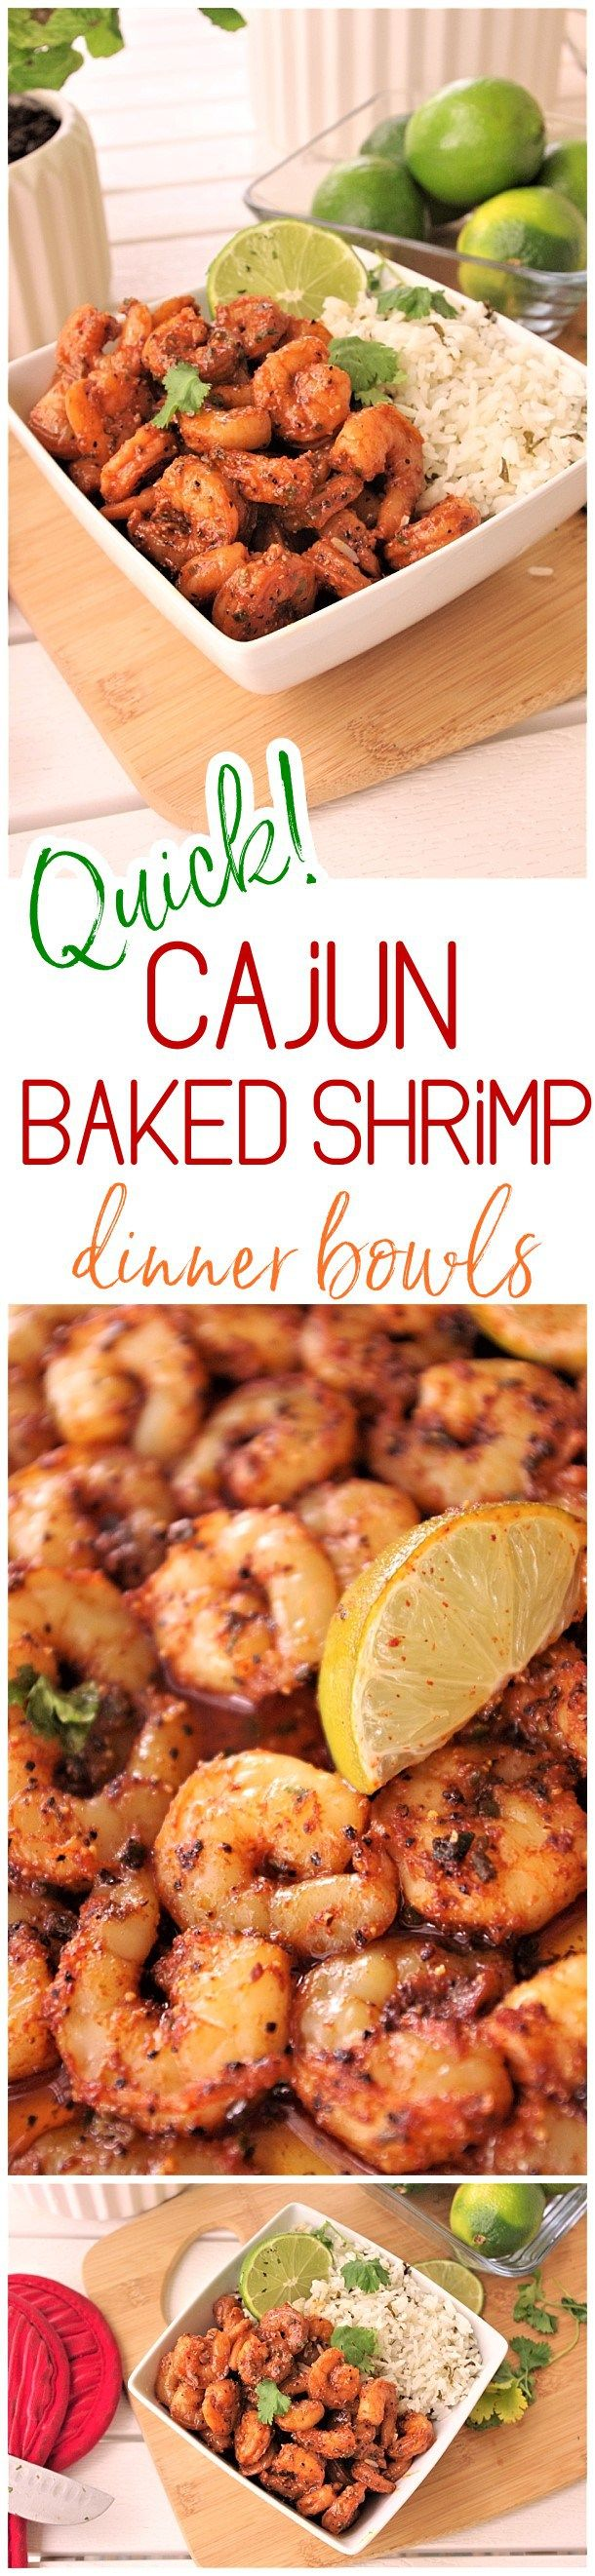 Quick and Easy Cajun Baked Sheet Pan Shrimp Bowls Lunch or Dinner Family Style Recipe - Use it in tacos, meal prep bowls, or over rice or noodles. So versatile and the flavor is so yummy you'll want to eat the entire pan by itself! Dreaming in DIY #bakedshrimp #onepanmeals #cajunshrimp #sheetpansuppers